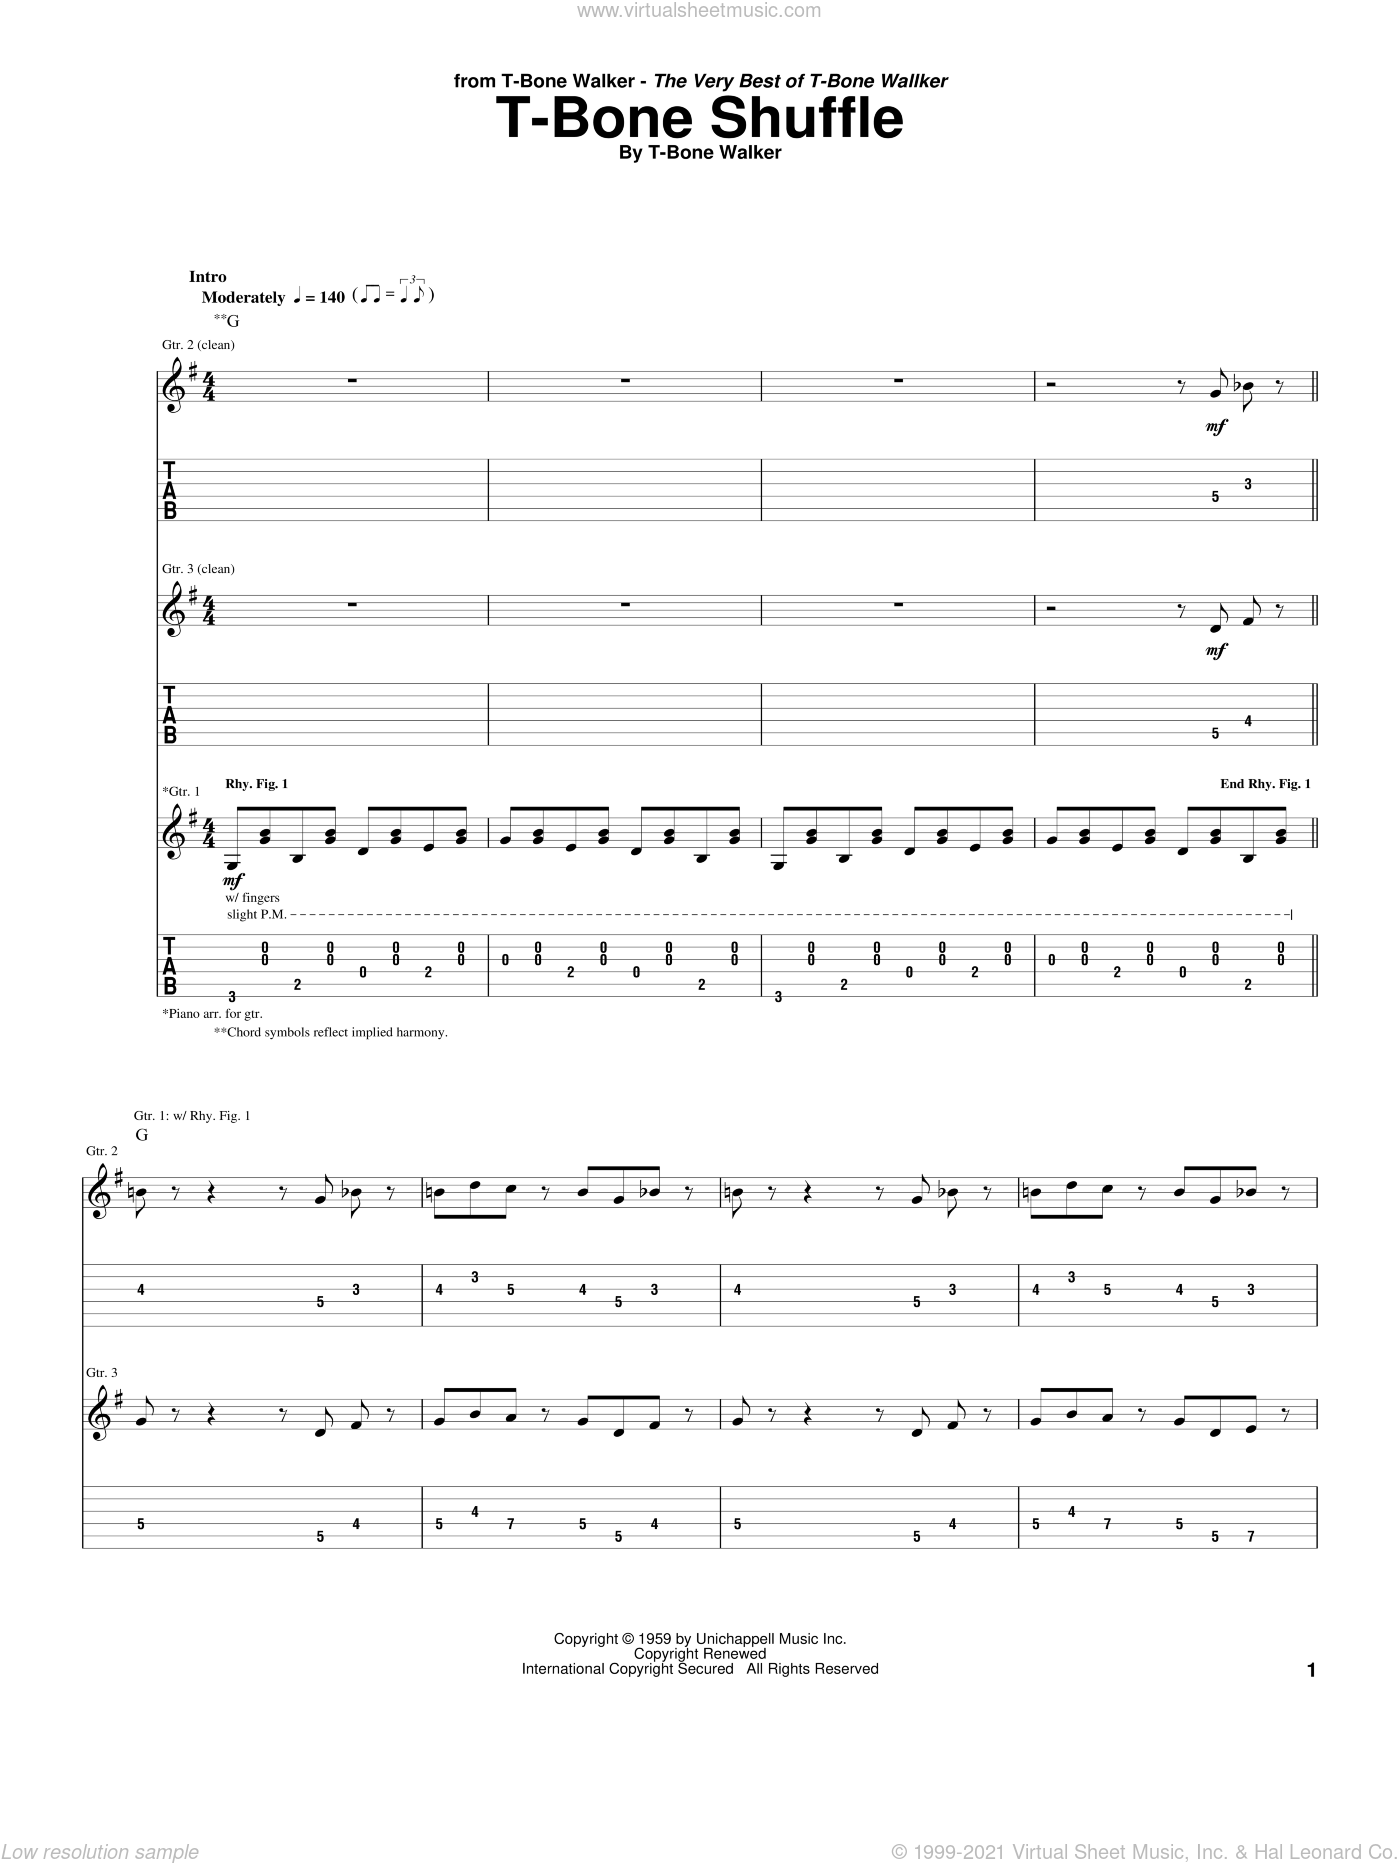 T-Bone Shuffle sheet music for guitar (tablature) by Aaron 'T-Bone' Walker, intermediate skill level